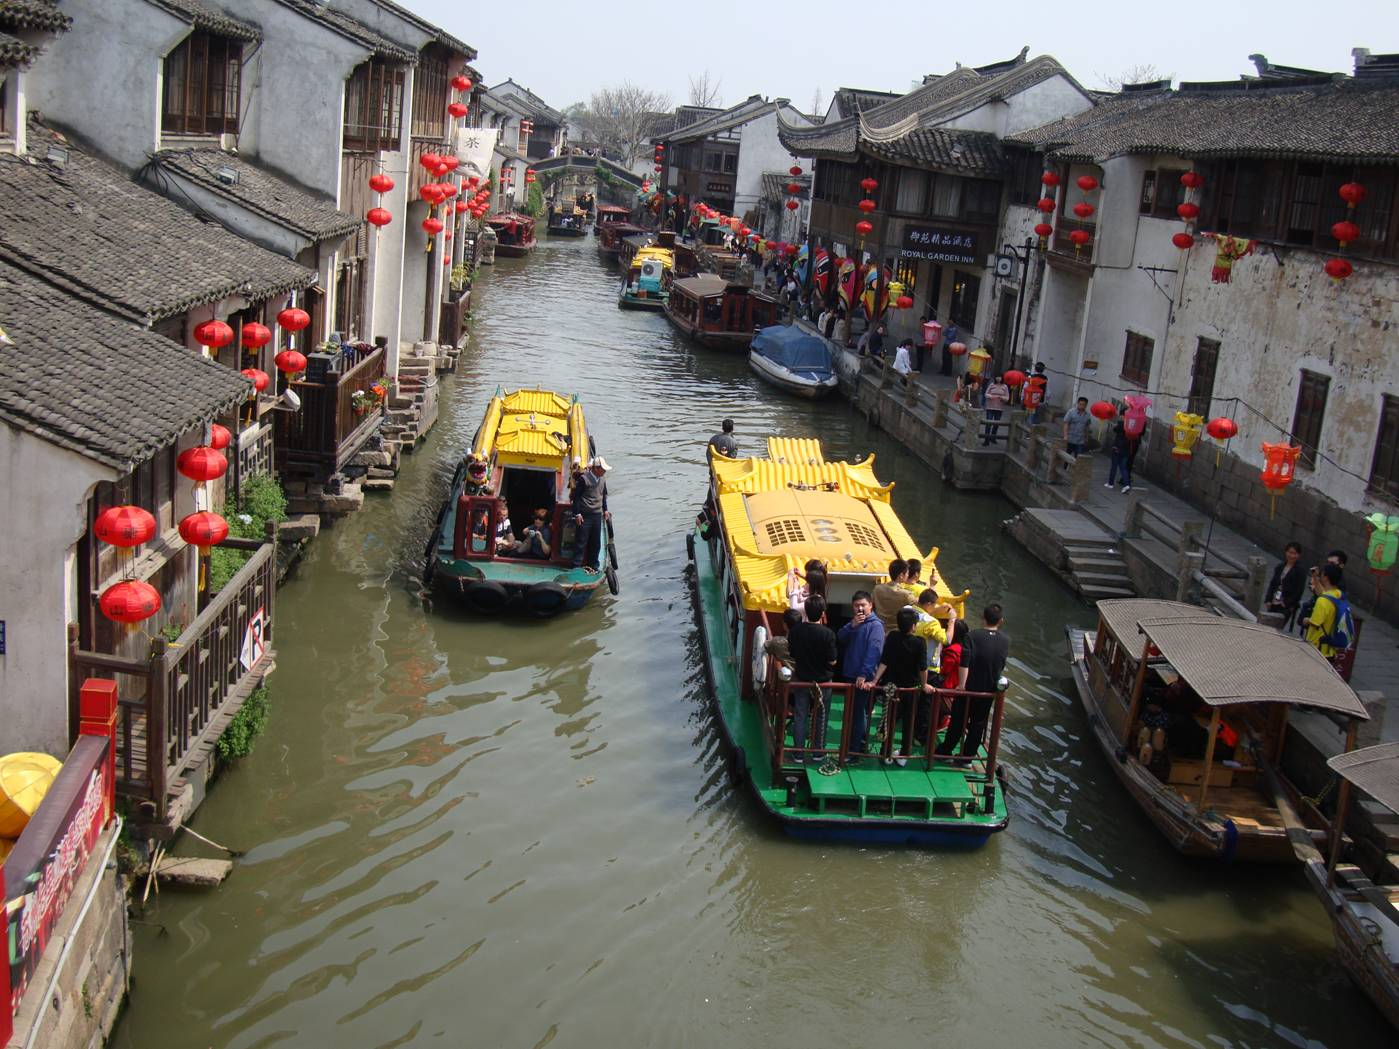 Picture:  Tour boats on the Suzhou canal as seen from a bridge.  It's a colourful city this time of year.  Suzhou, China